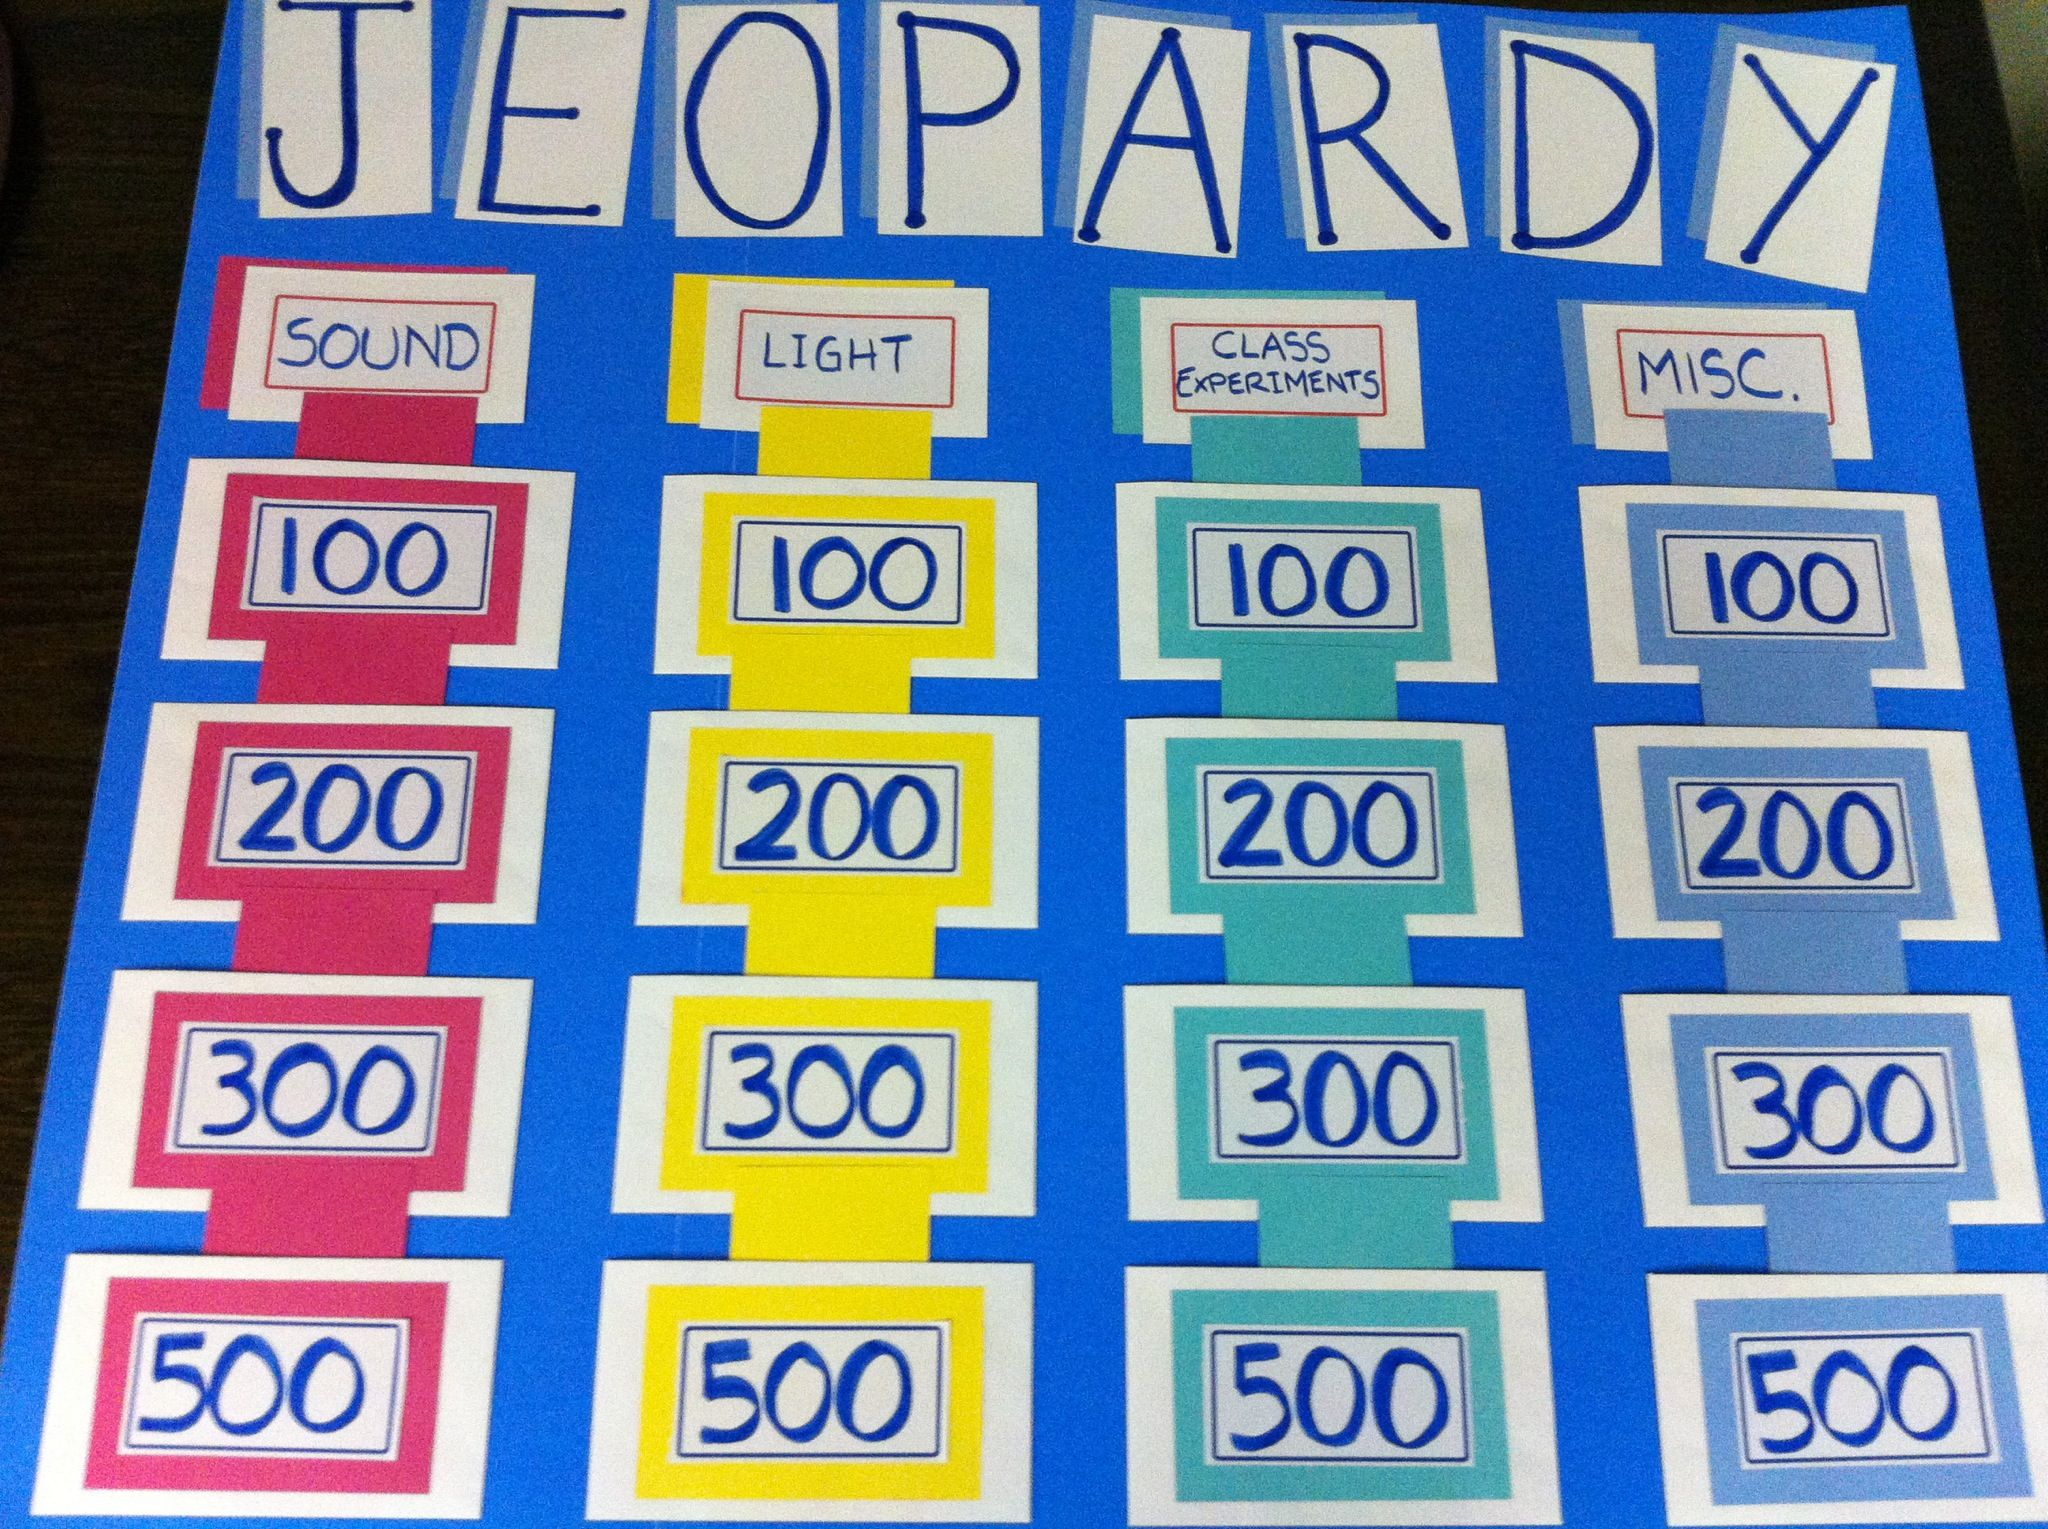 Jeopardy Anchor Chart made from envelopes cue